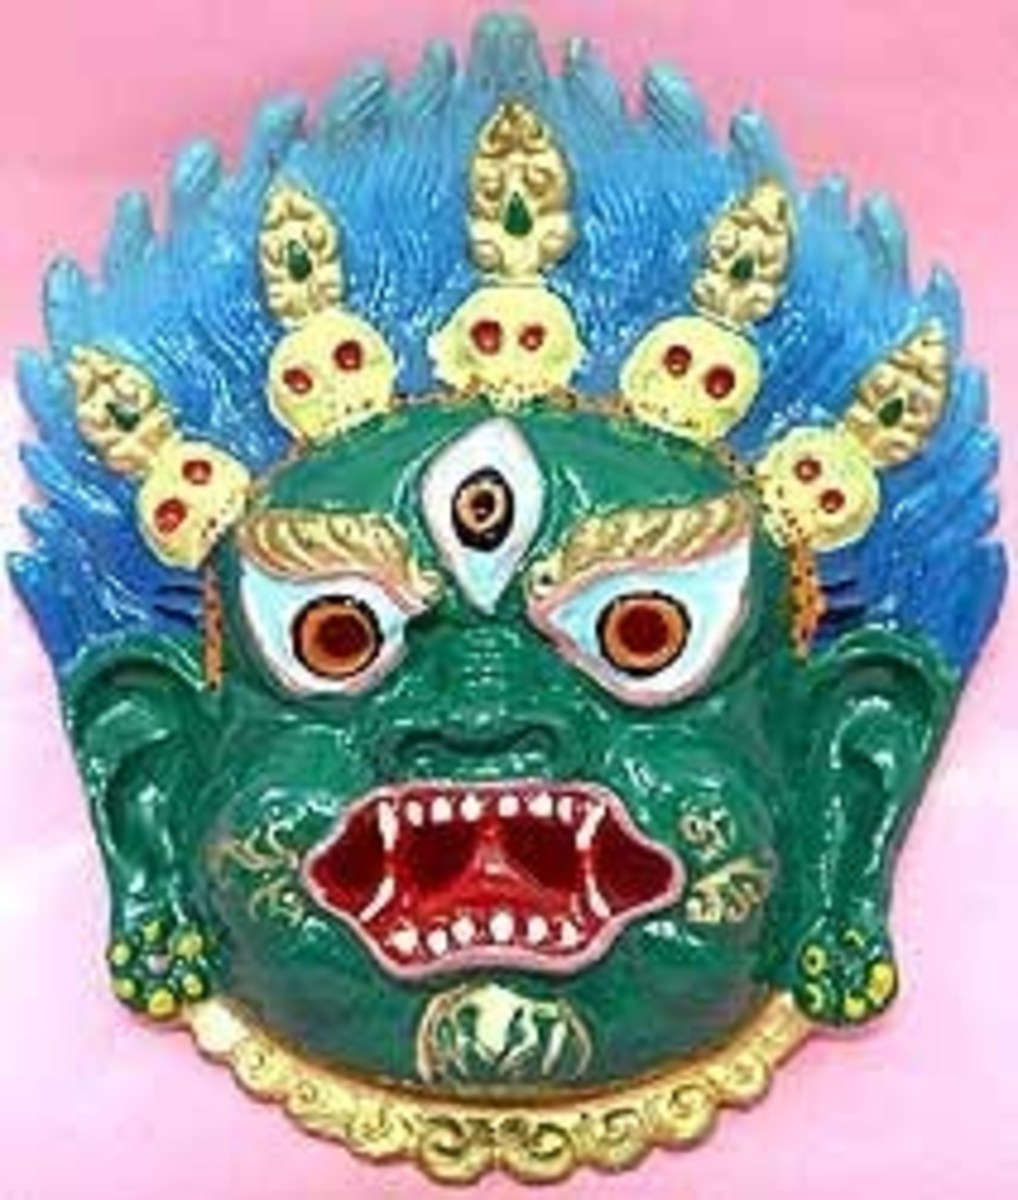 THE BUDDHIST MAHA KAAL MASK